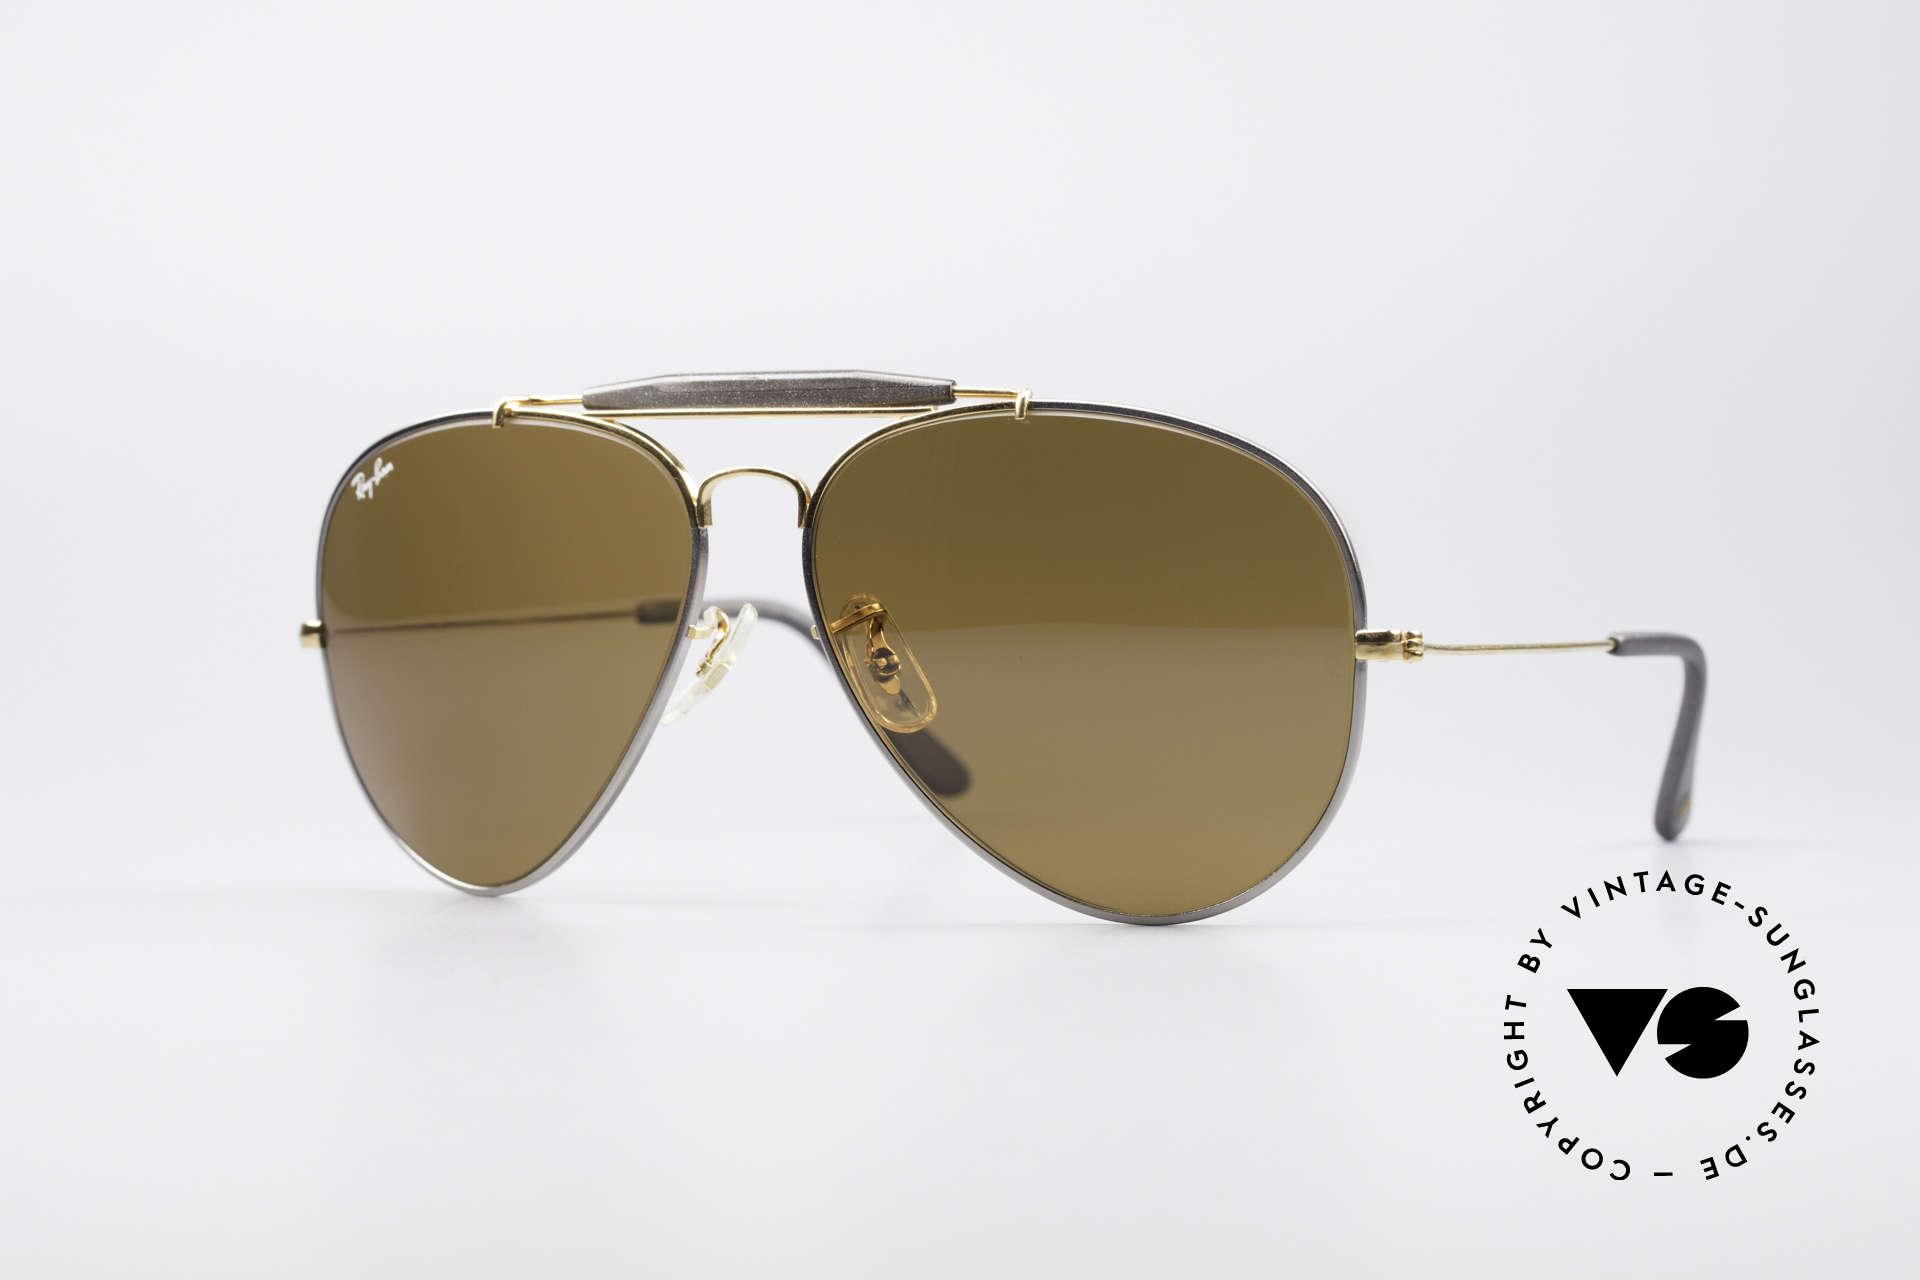 Ray Ban Outdoorsman II Precious Metals Titanium, costly vintage RAY-BAN B&L aviator sunglasses, Made for Men